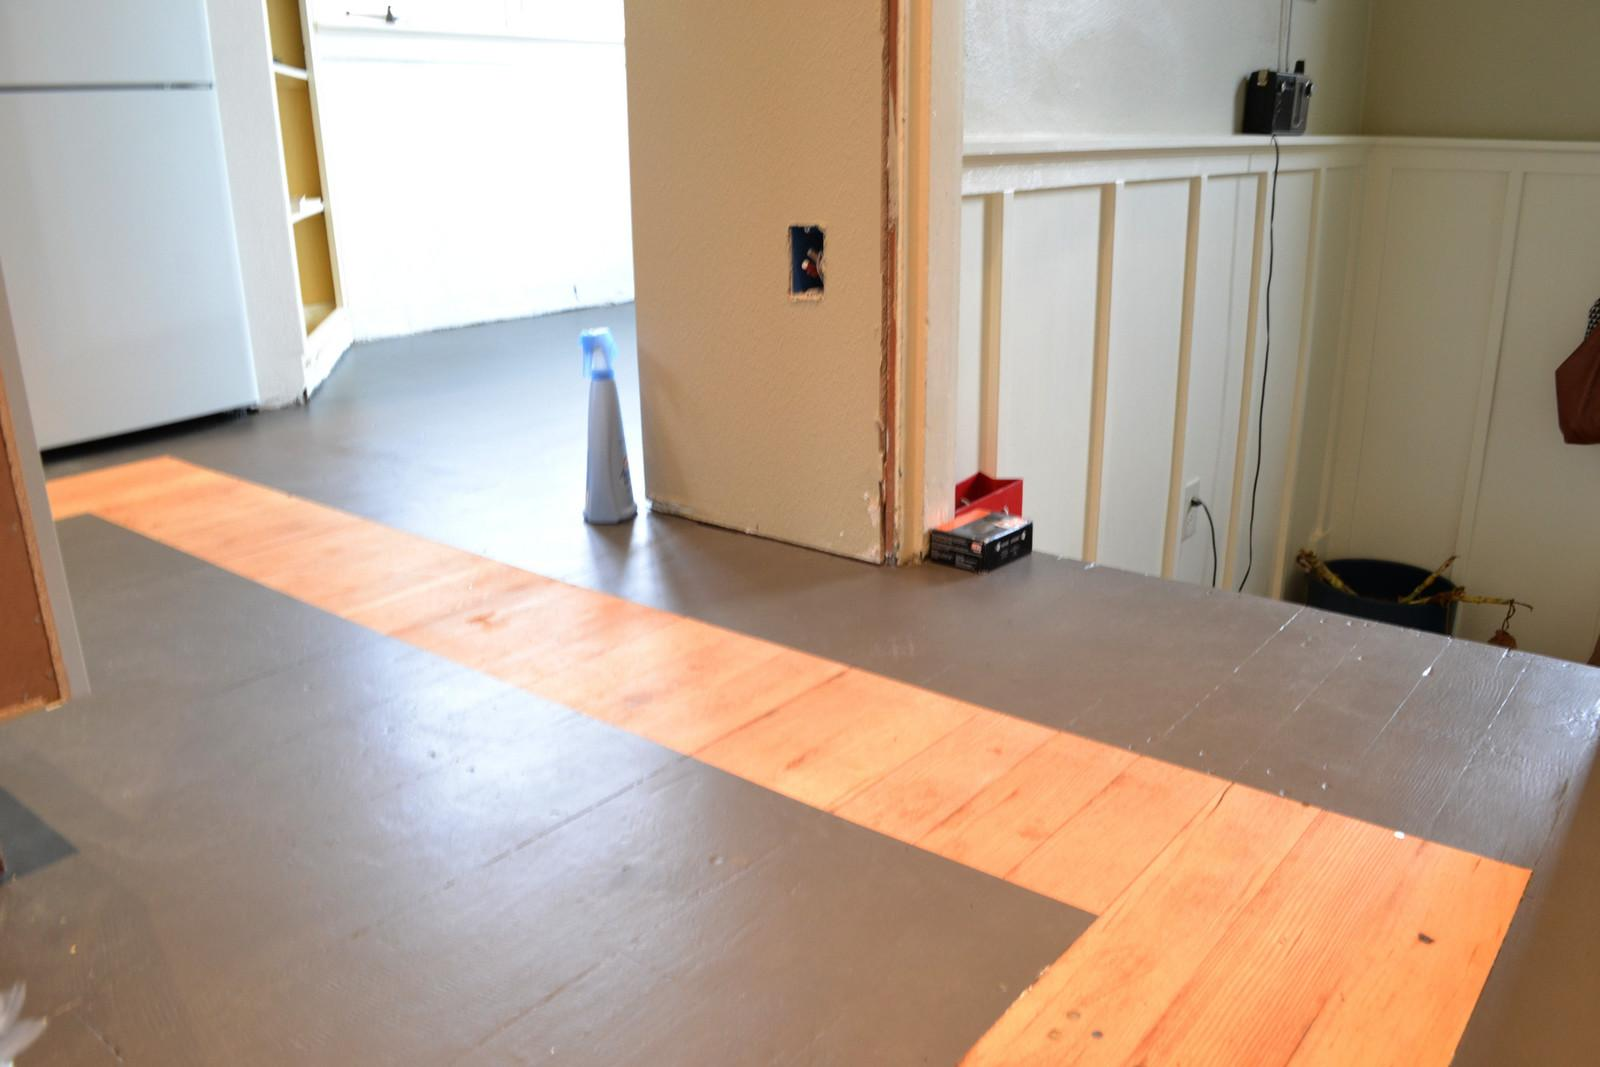 Additional Painting Hardwood Floors Minimalist Neat